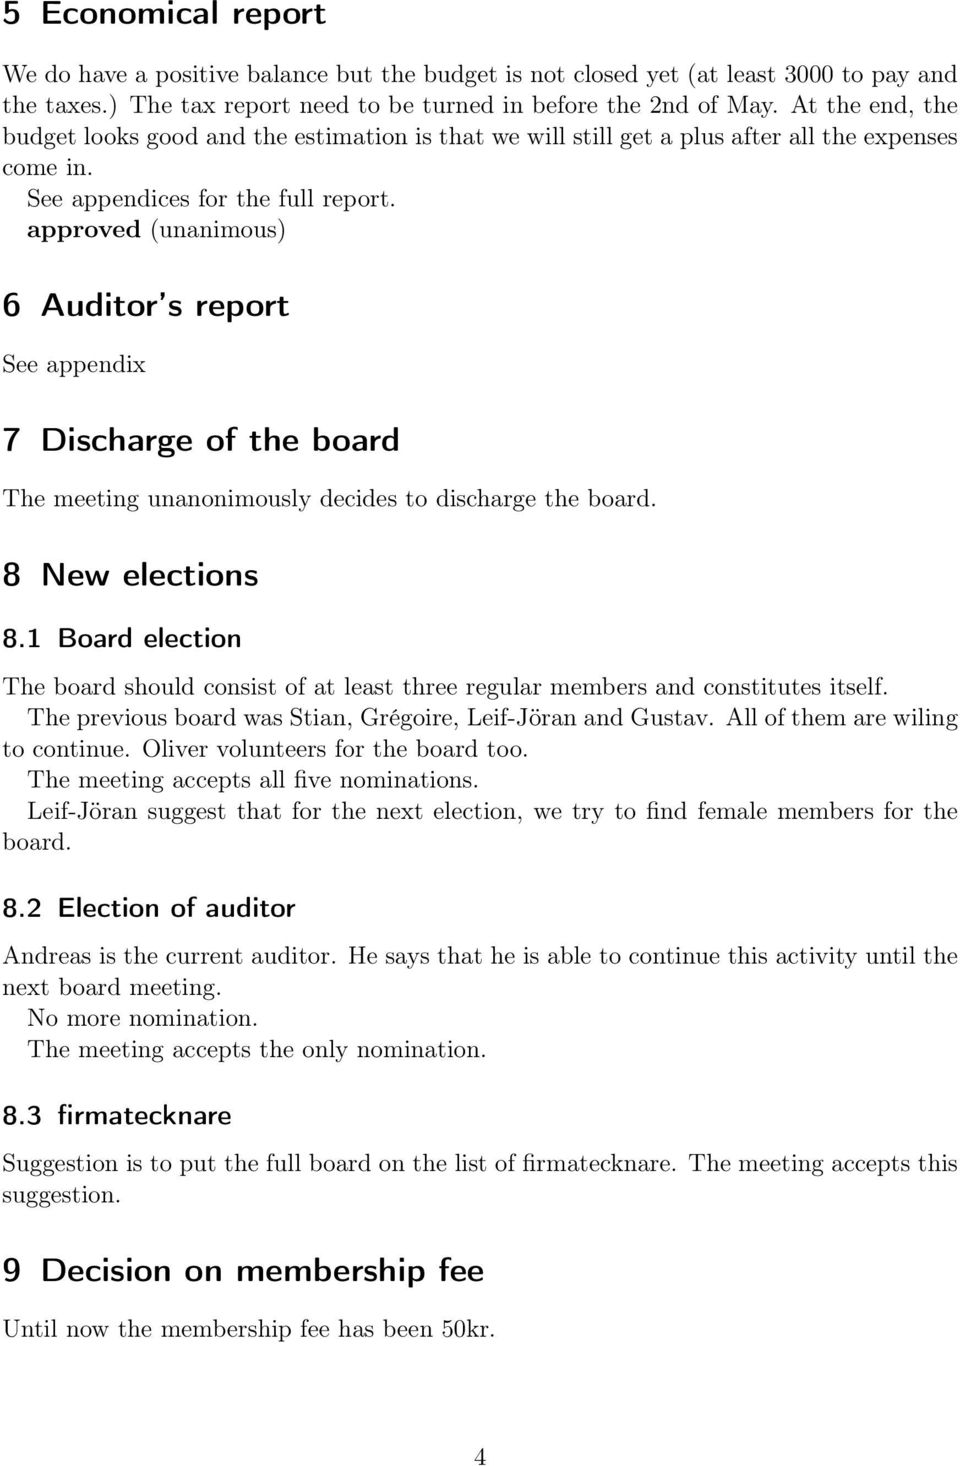 approved (unanimous) 6 Auditor s report See appendix 7 Discharge of the board The meeting unanonimously decides to discharge the board. 8 New elections 8.